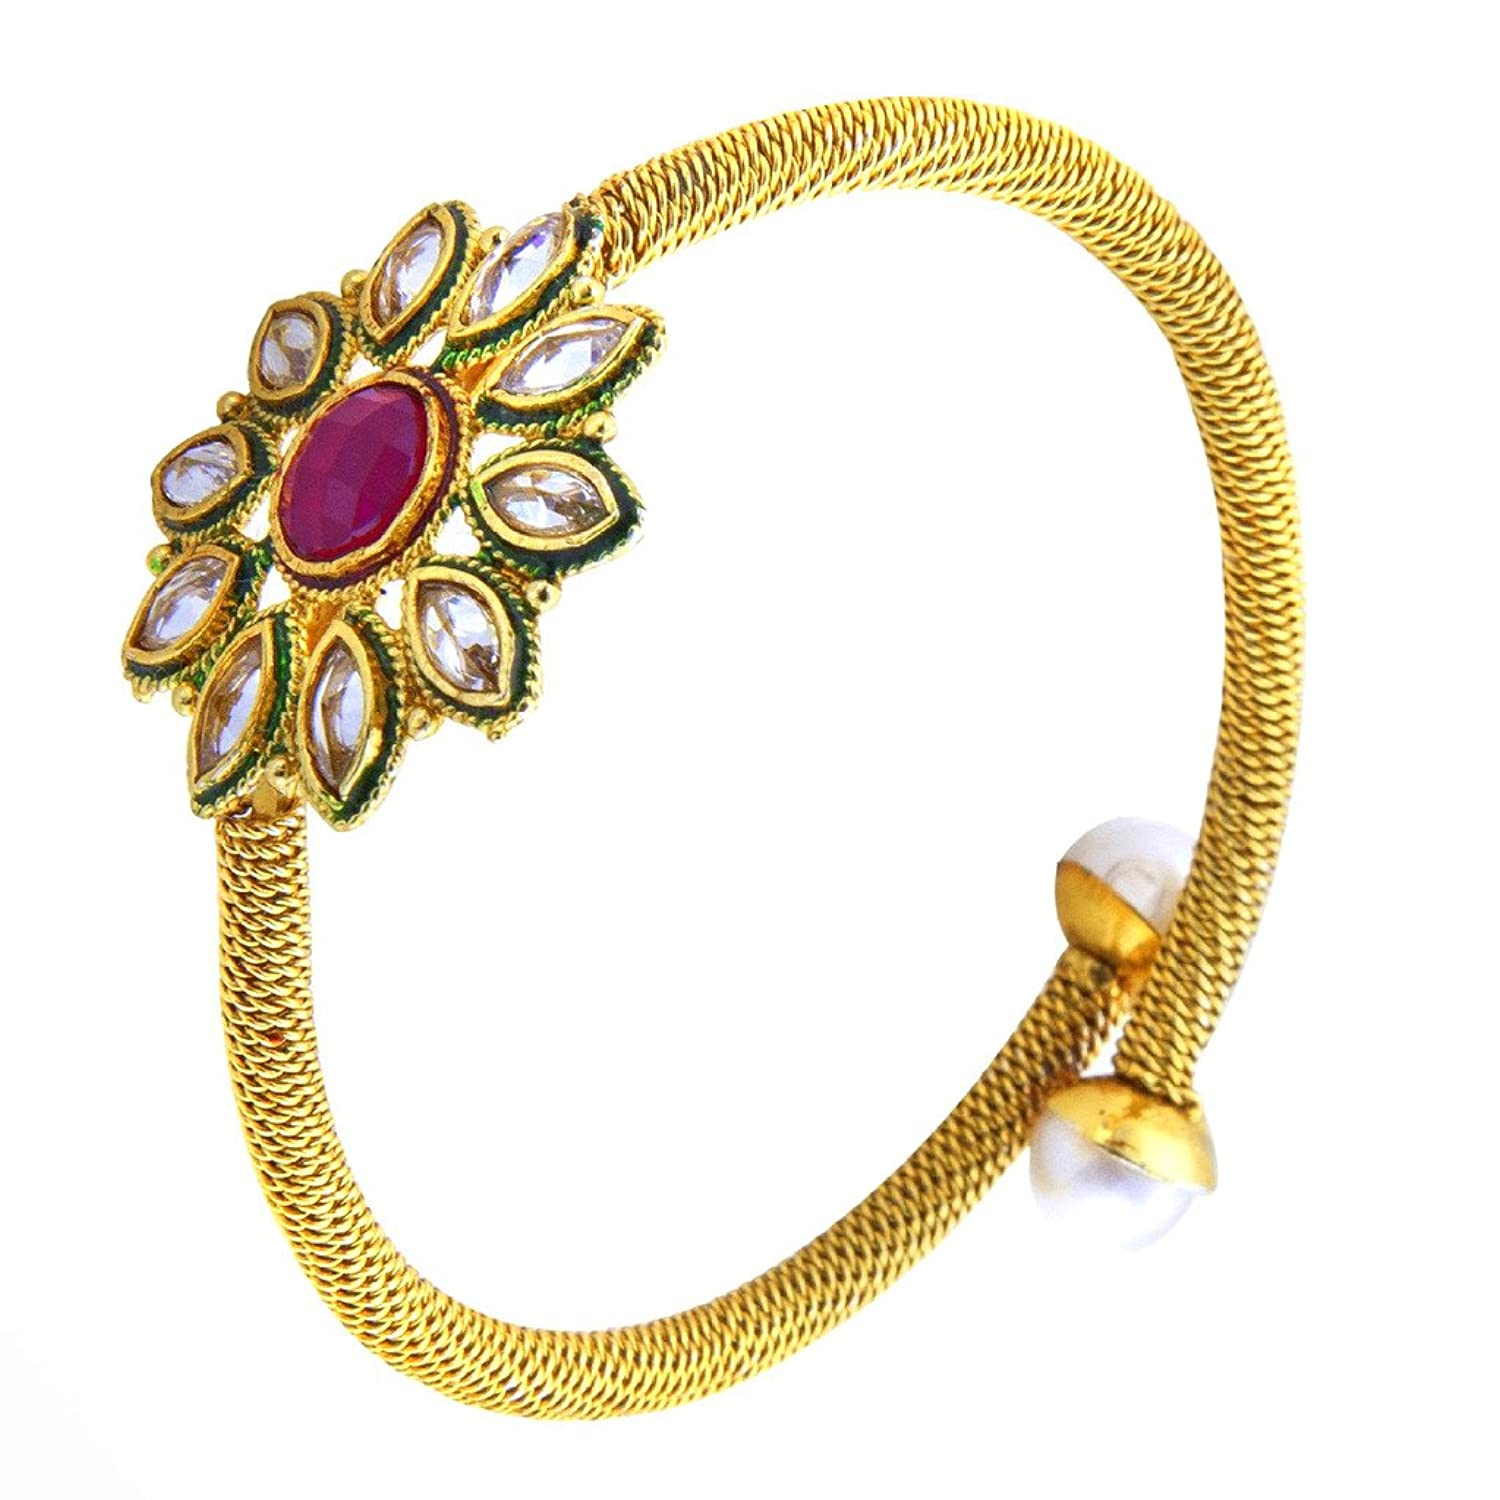 fashion studded amazon prices at bracelet crystal bangle brands jewellery plated youbella girls low women buy and bangles for online store dp india gold in